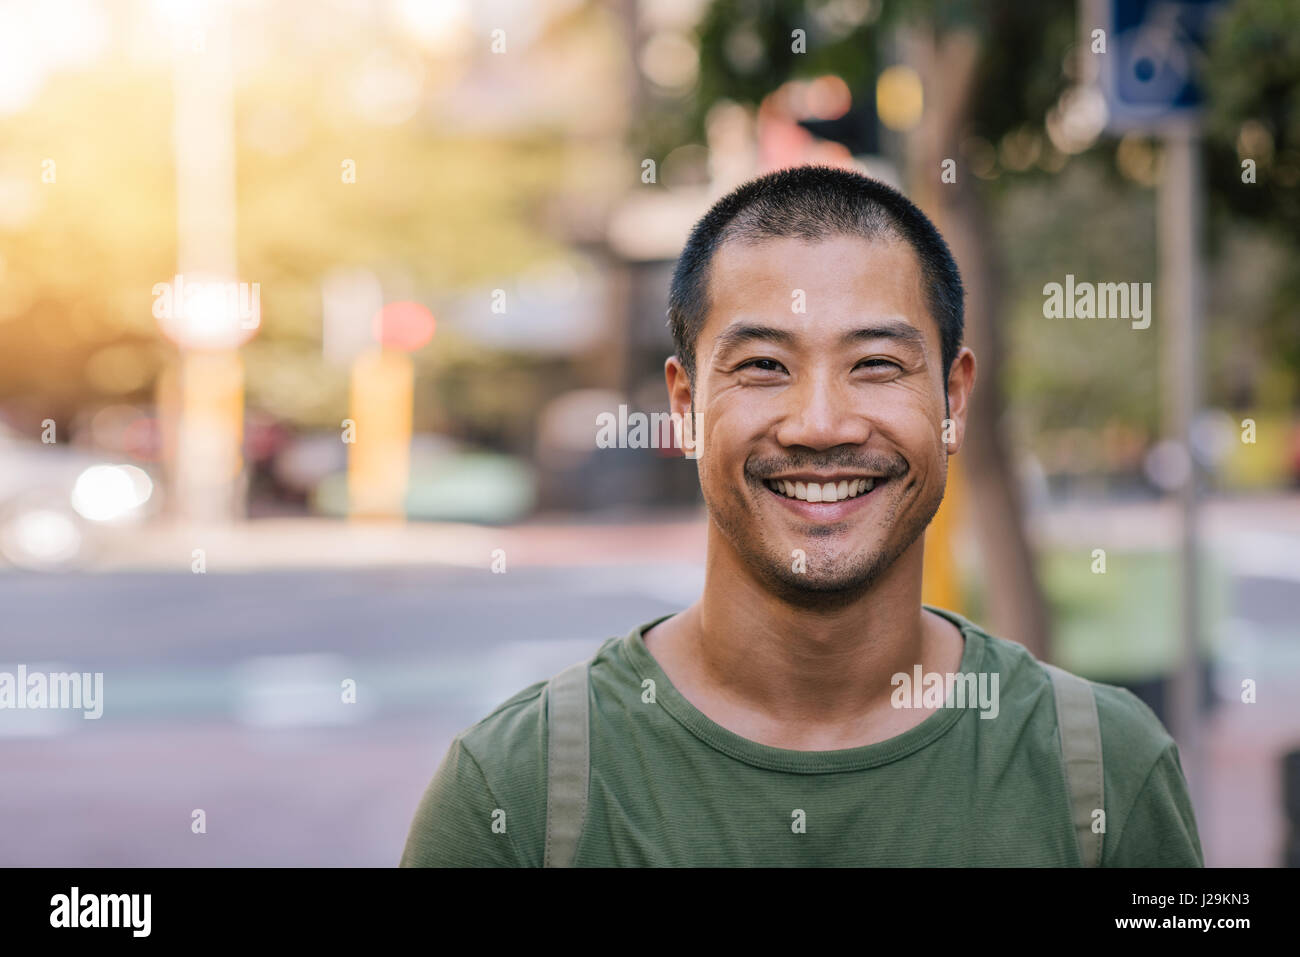 Young Asian man smiling avec confiance sur une rue de la ville Photo Stock